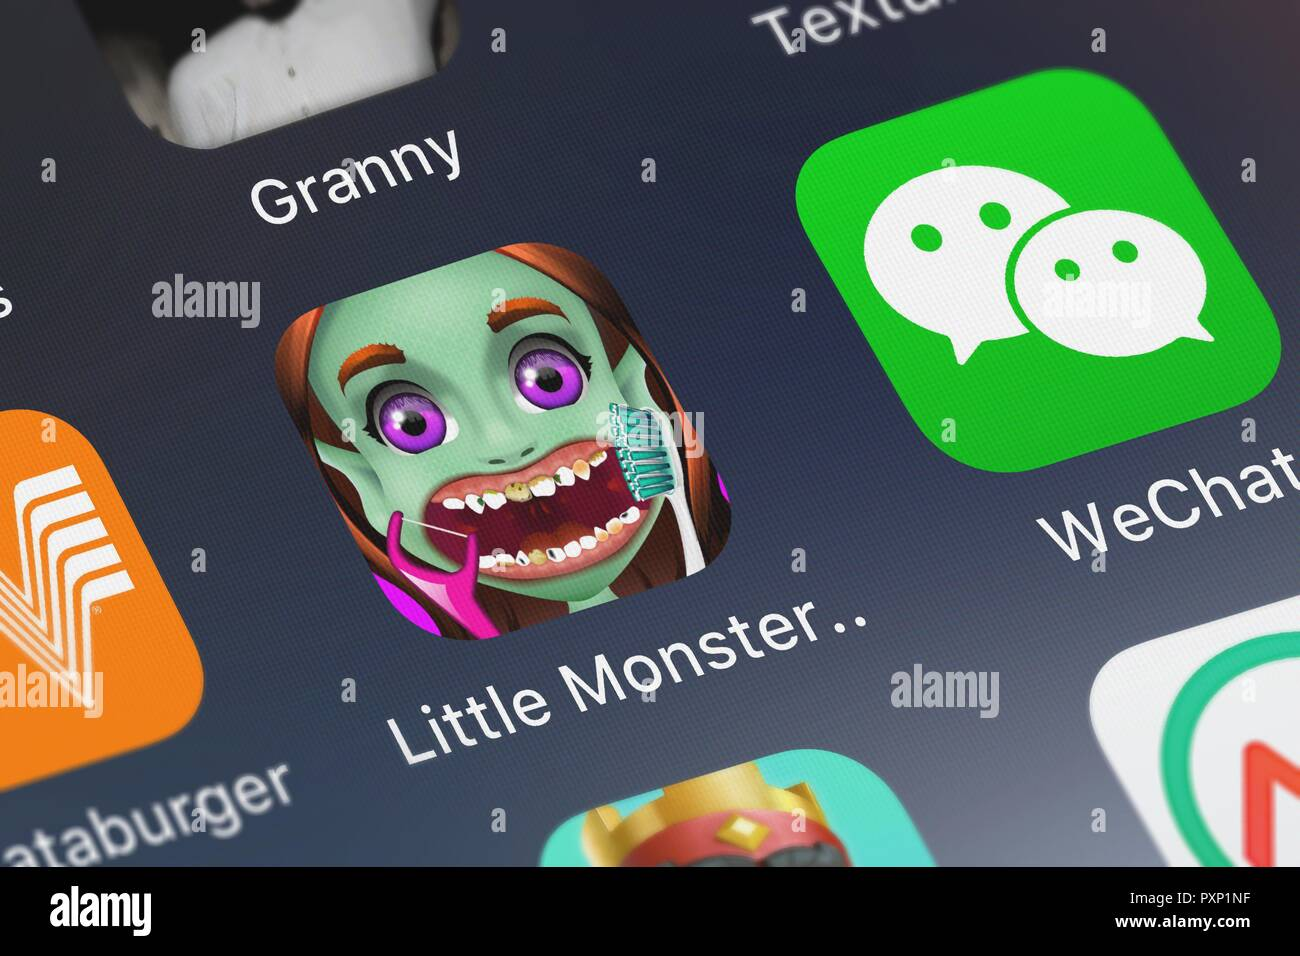 Little Monsters Stock Photos & Little Monsters Stock Images